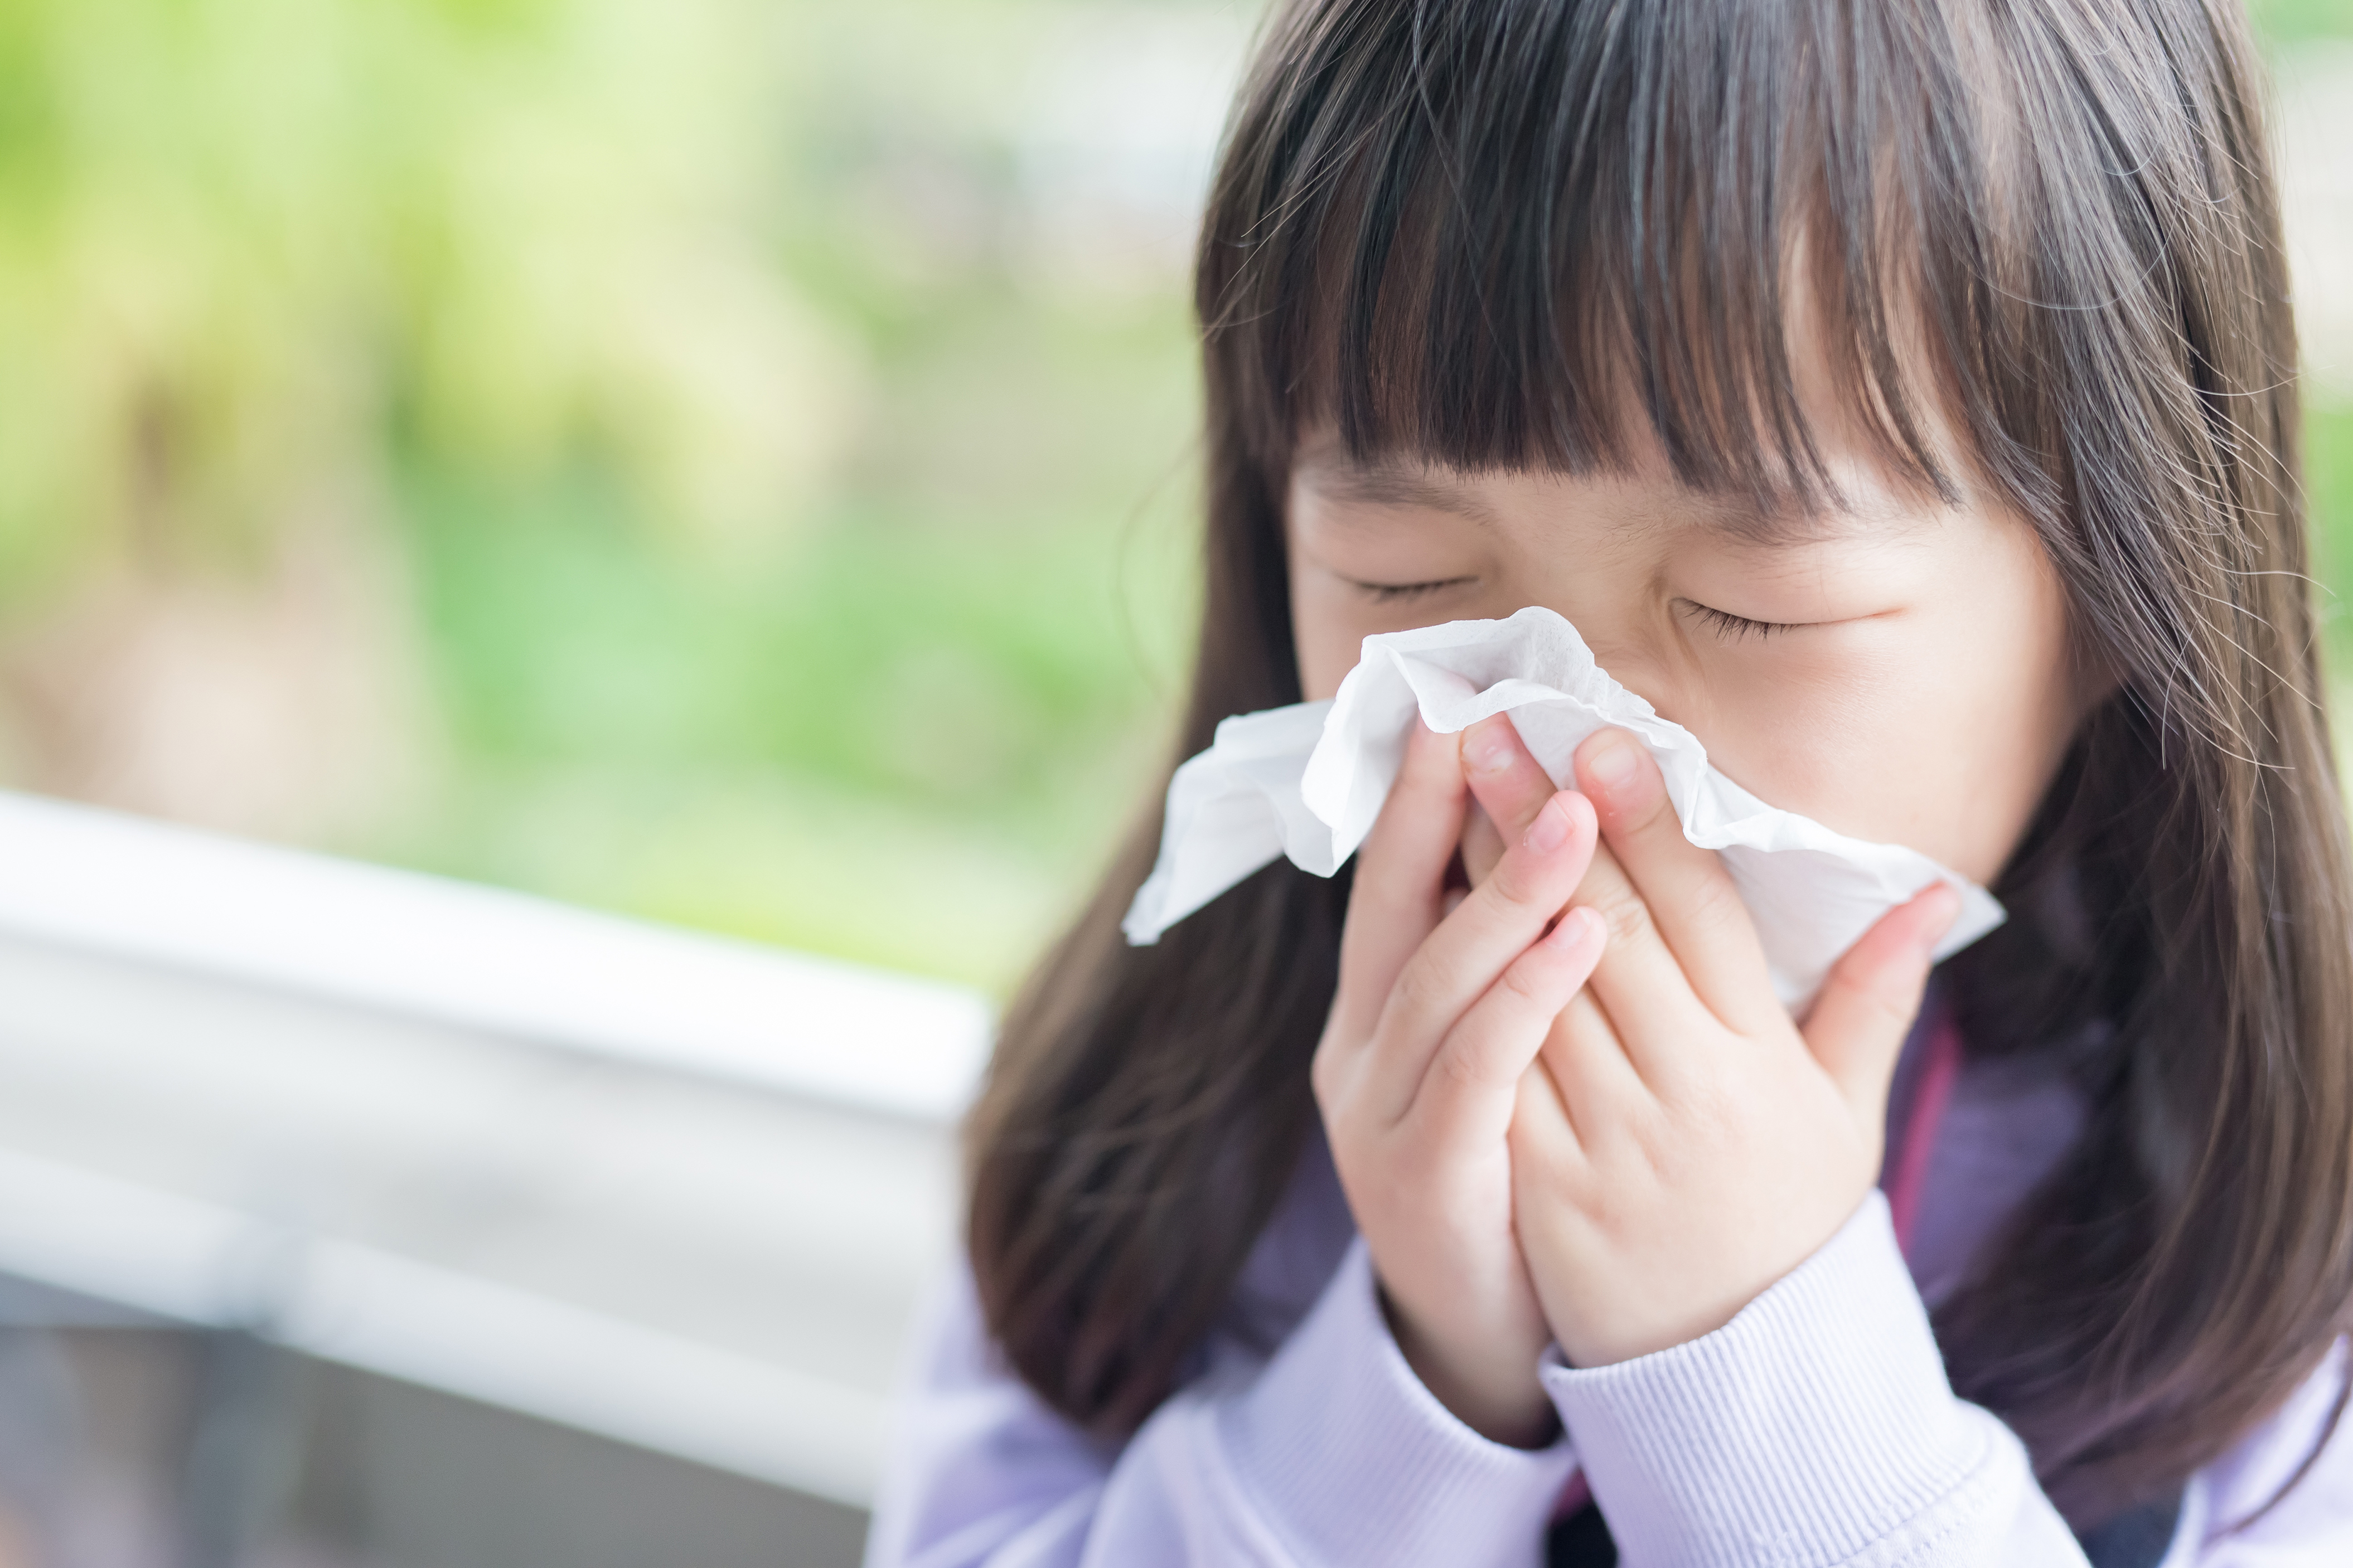 New findings suggest that doctors may be able to predict what children will develop asthma and allergies